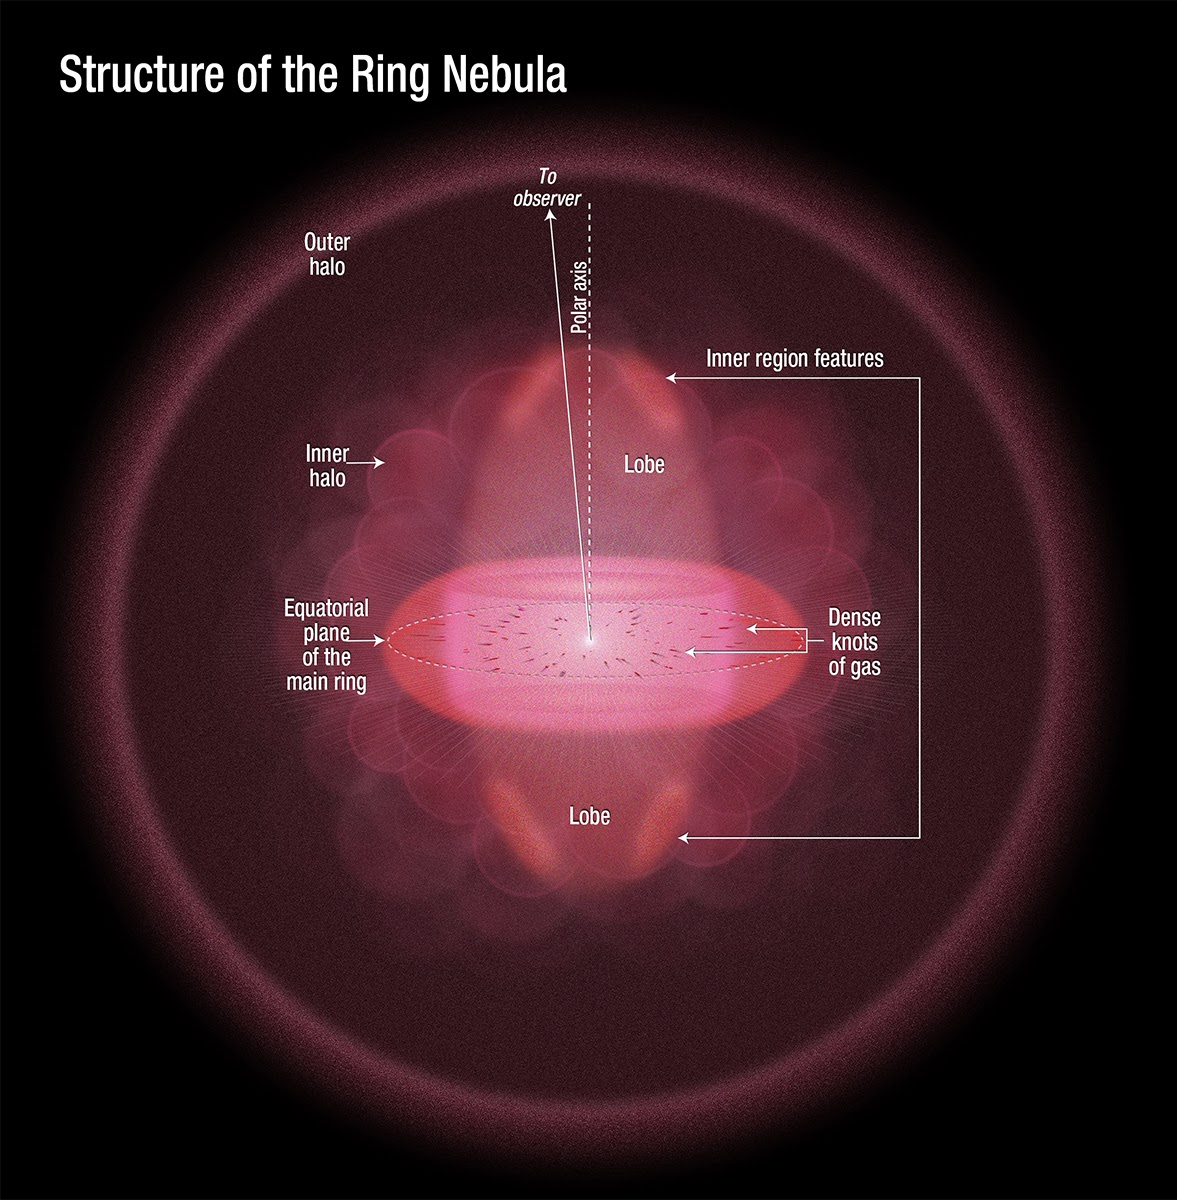 Structure of the Ring Nebula